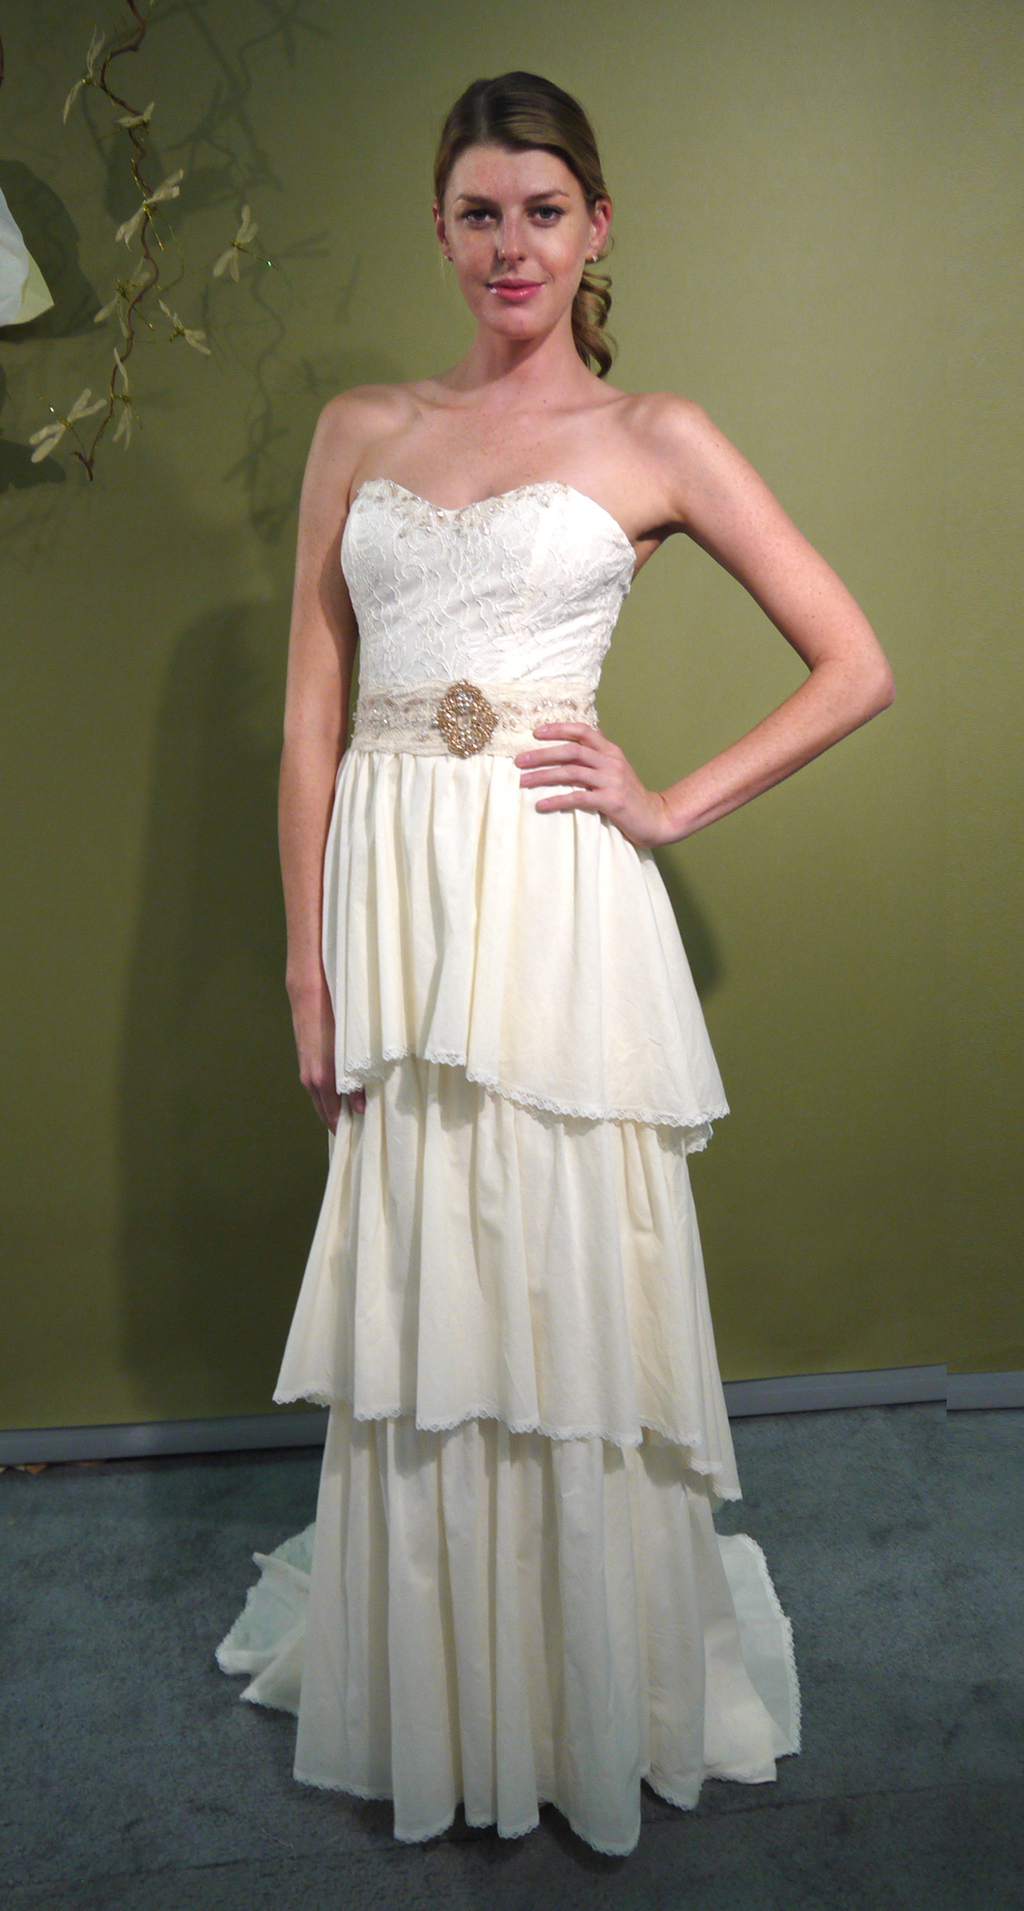 Fall-2011-wedding-dresses-louisa-sweetheart-ivory-bridal-gown-claire-pettibone-large.full